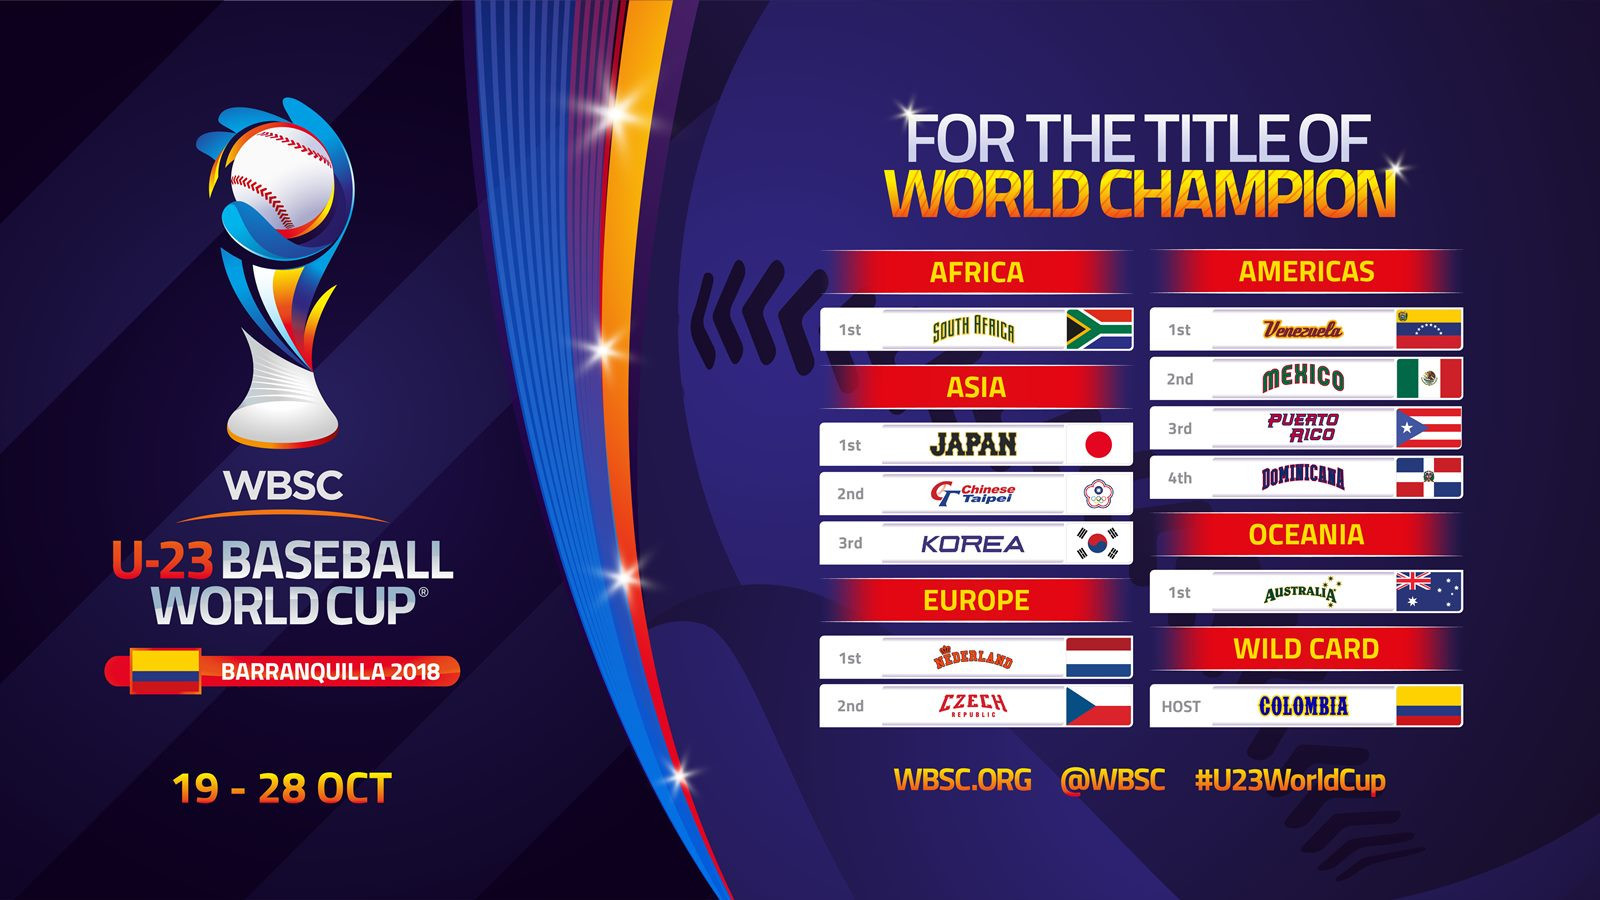 As the new hosts, Colombia have been given a wildcard into the competition to compete against 11 of the best baseball nations in the world ©WBSC